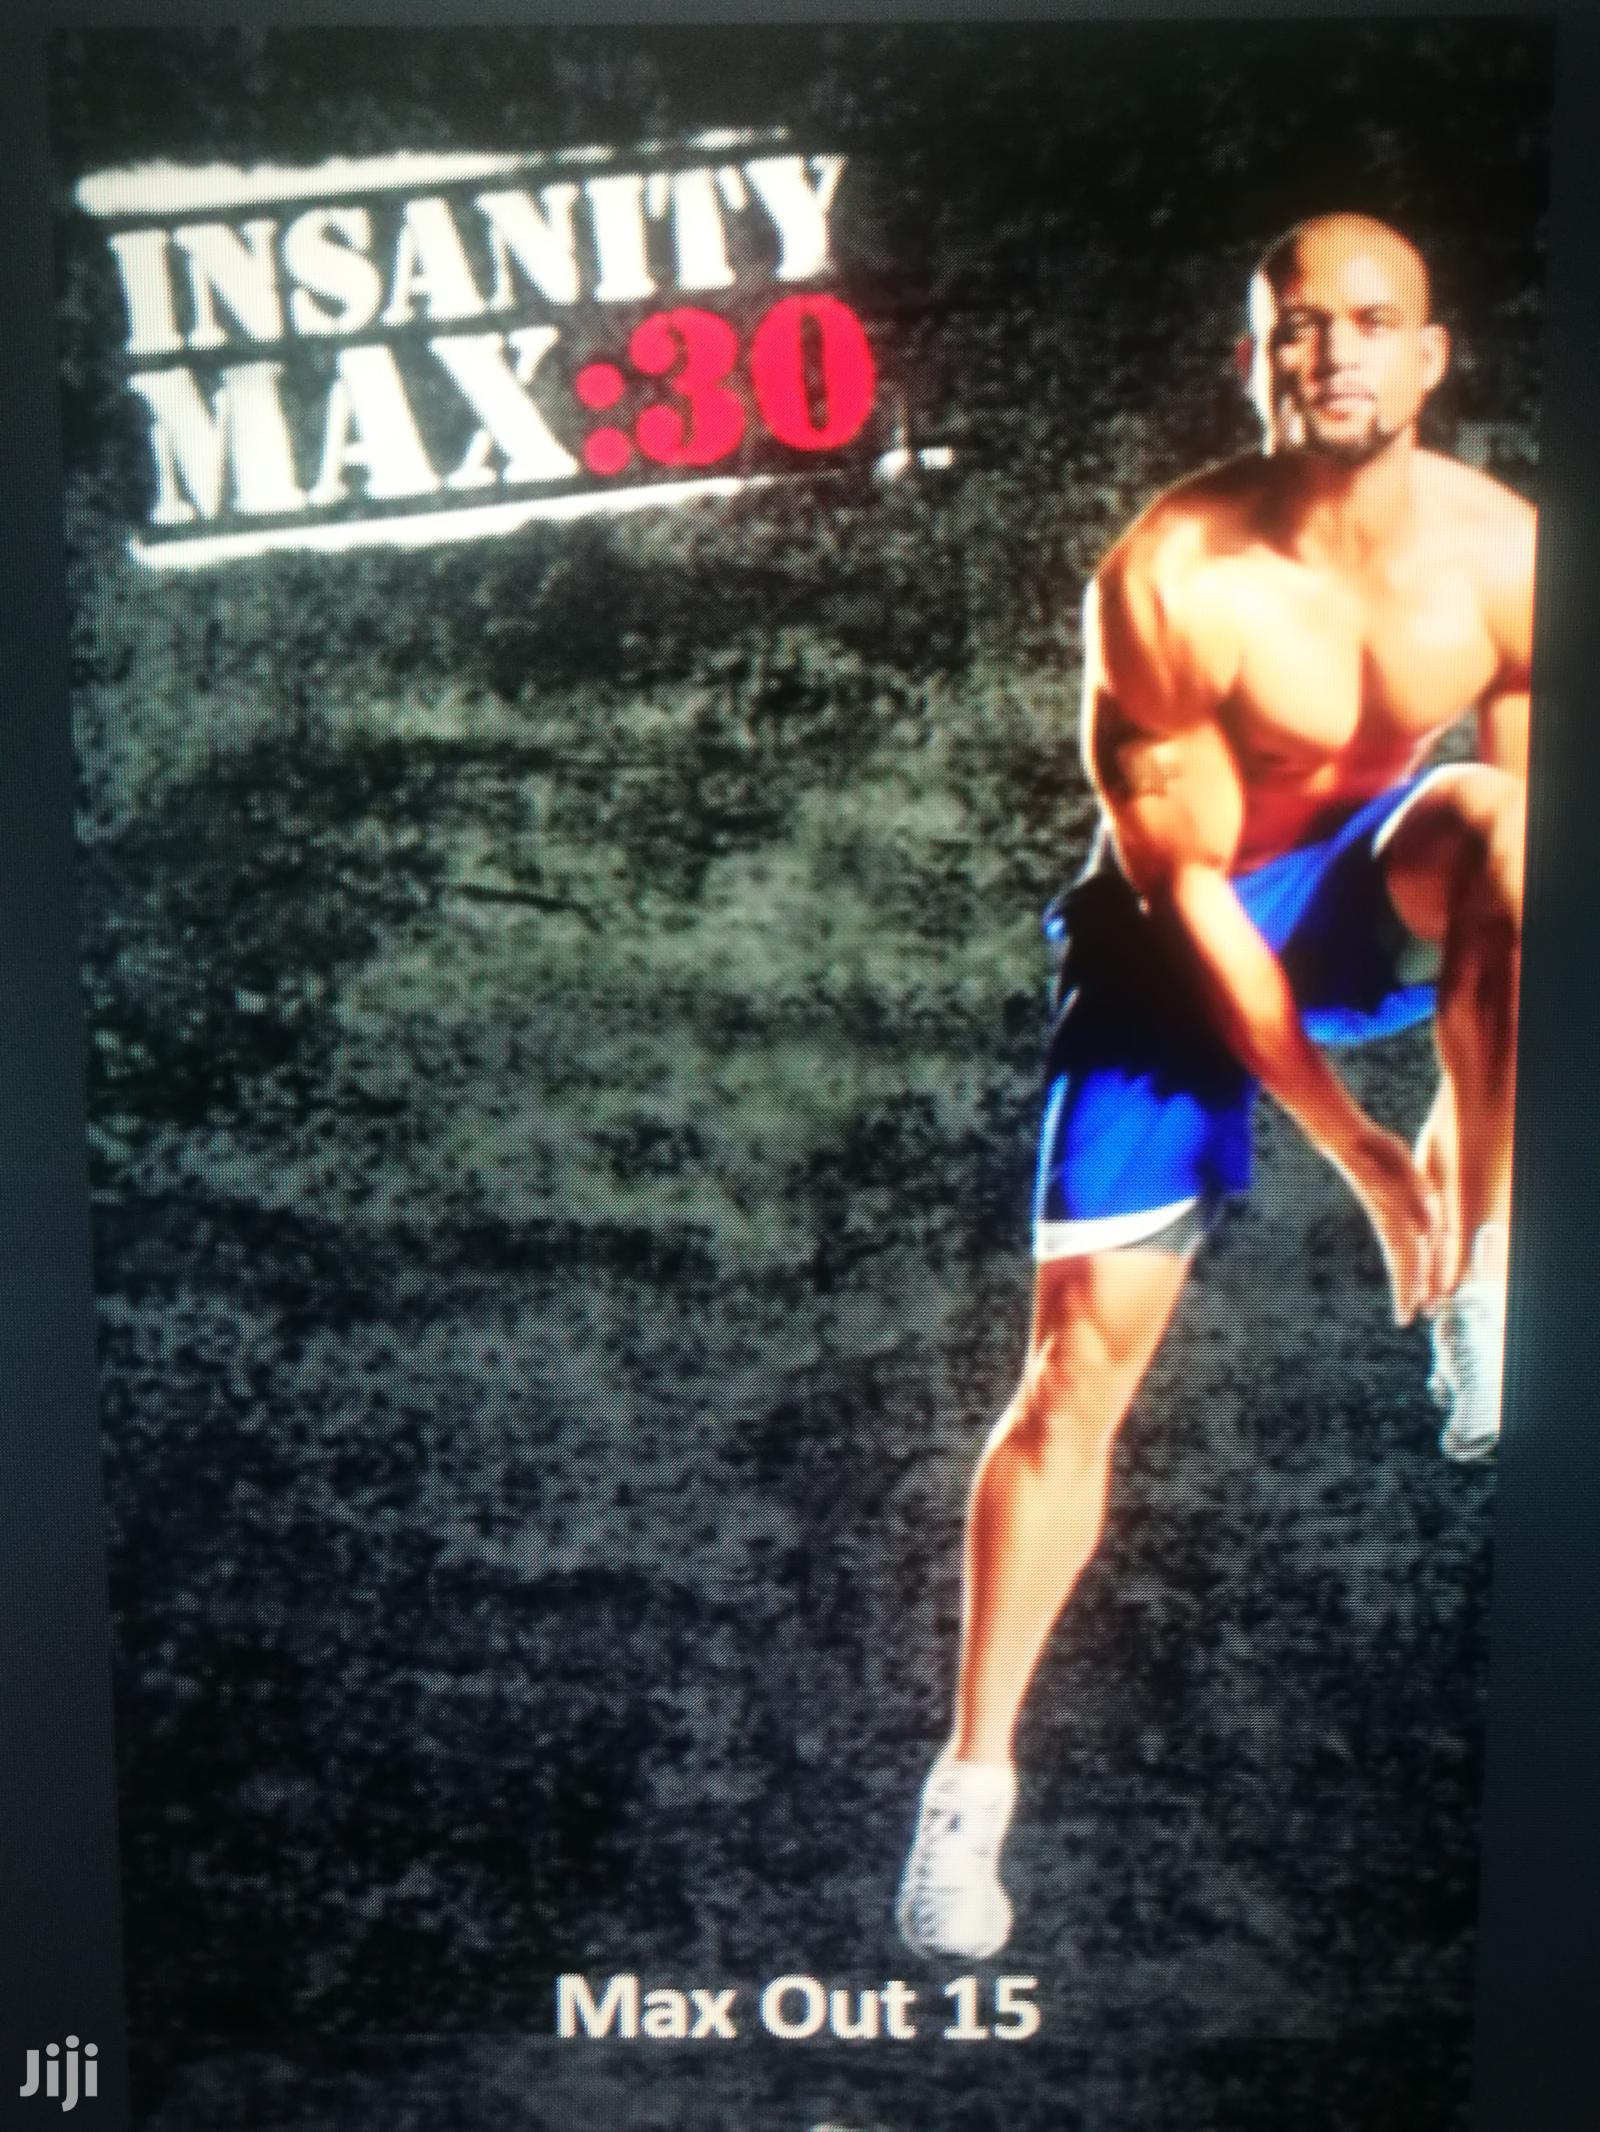 Insanitymax 30/ P90x Home Workout Videos | CDs & DVDs for sale in Nairobi Central, Nairobi, Kenya